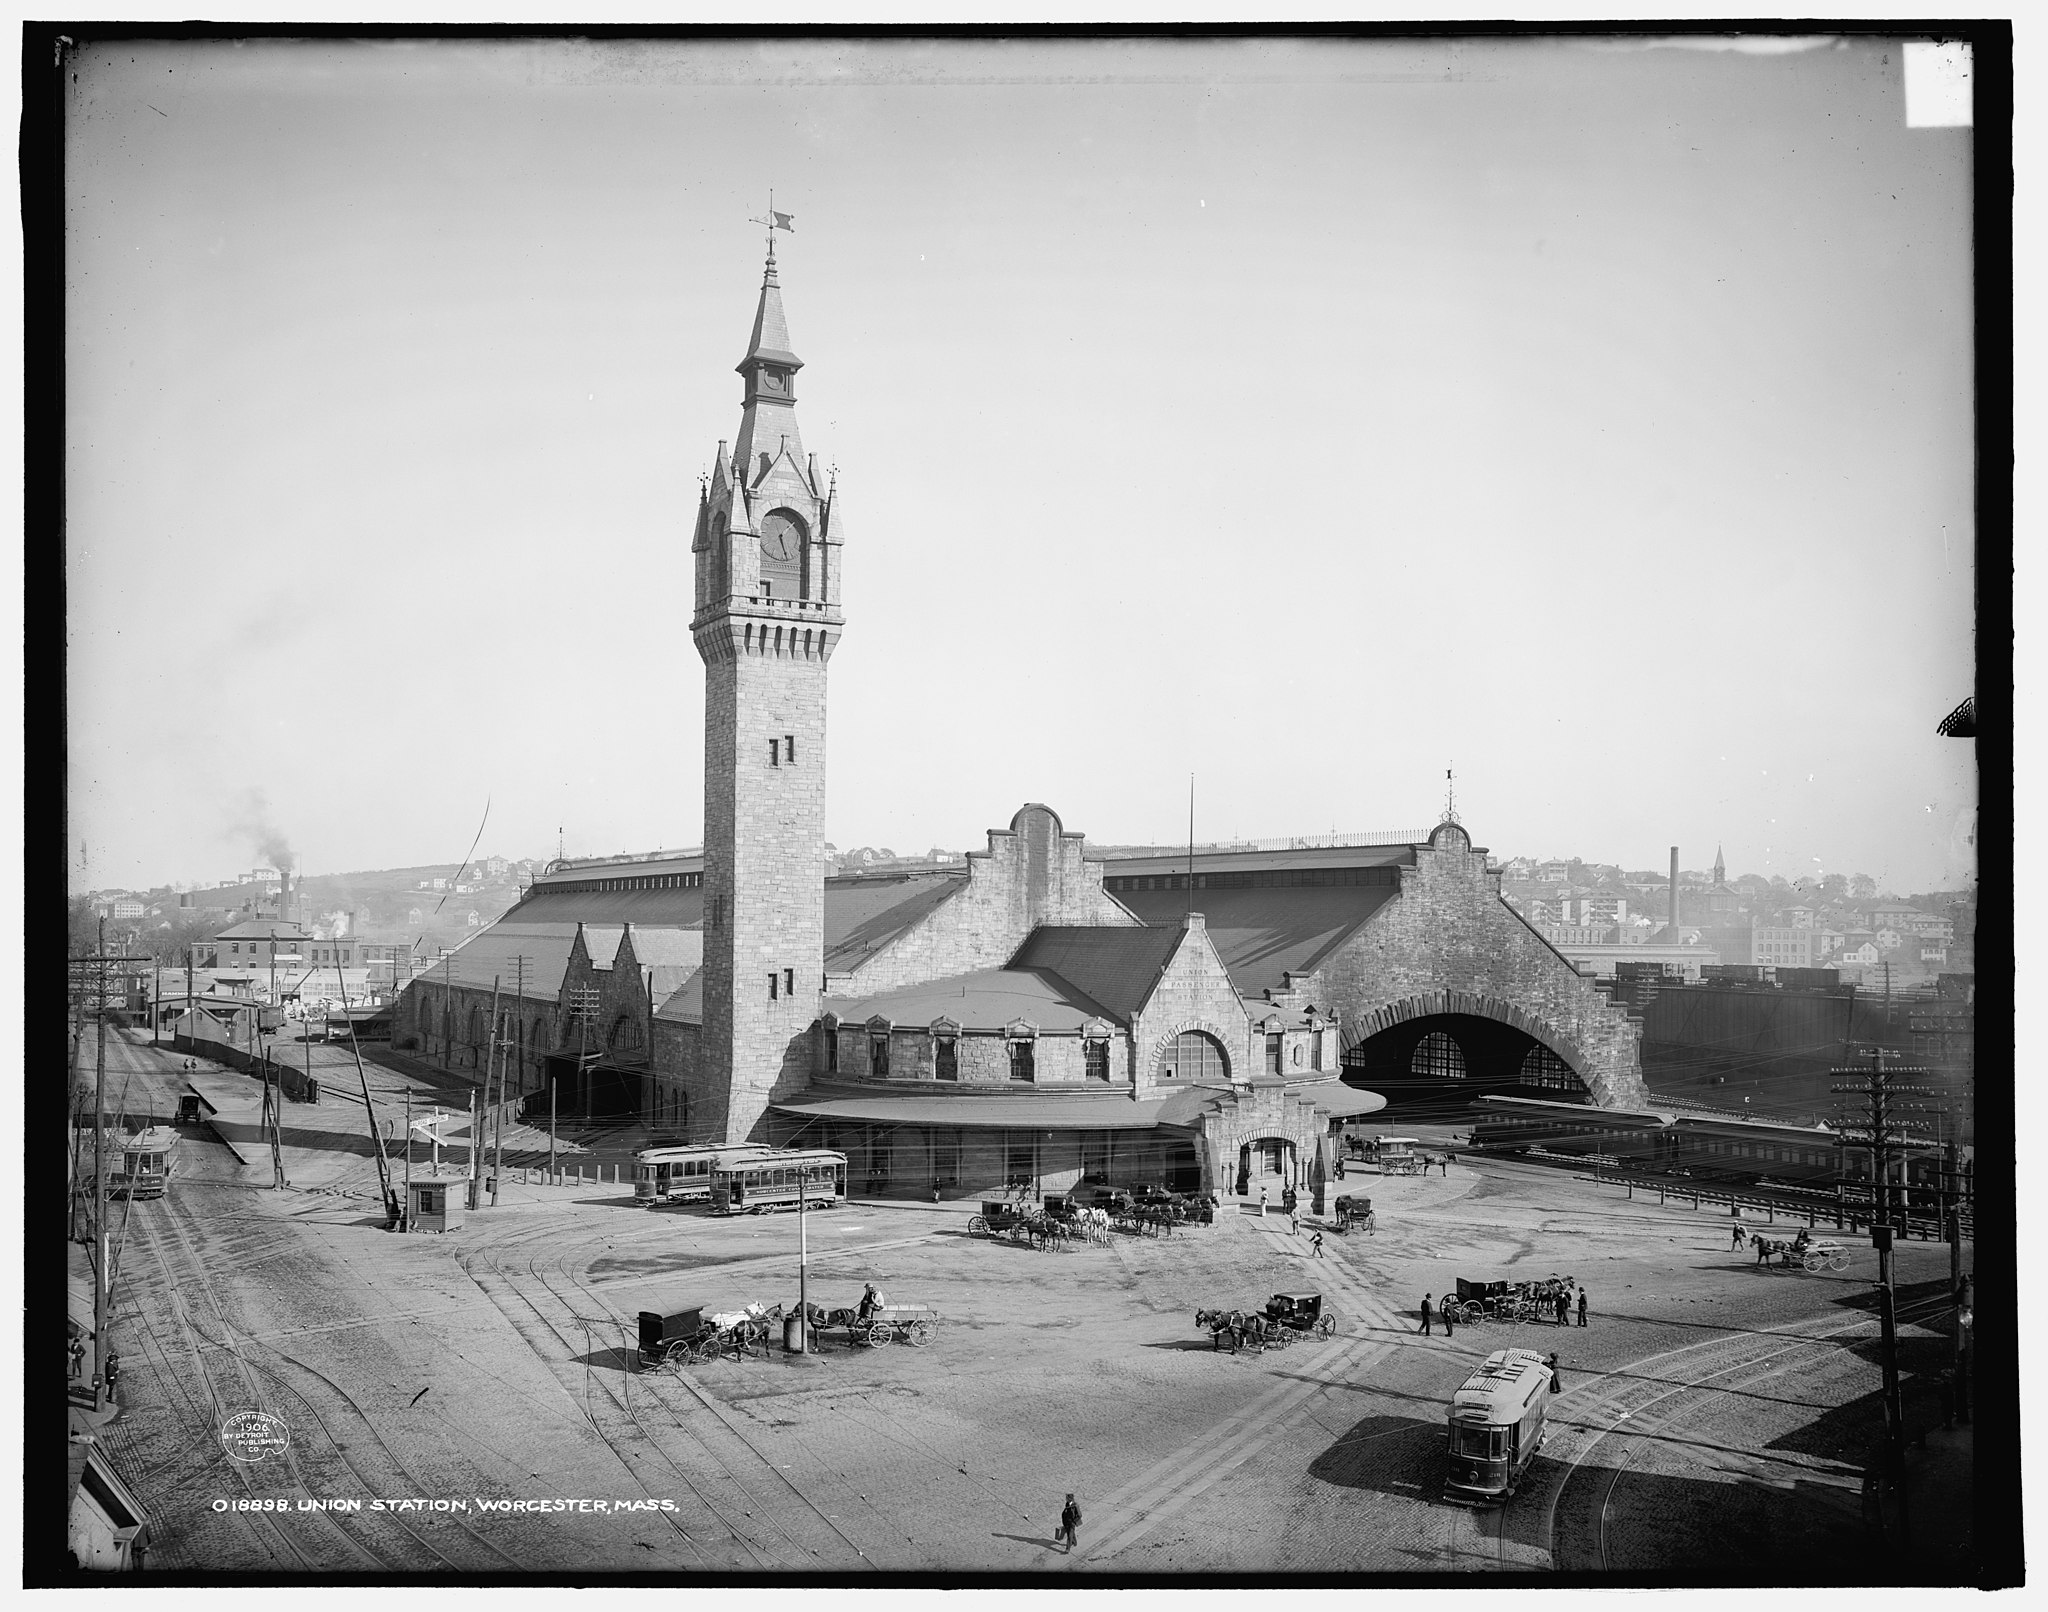 The Old Union Station, Worcester MA, 1906